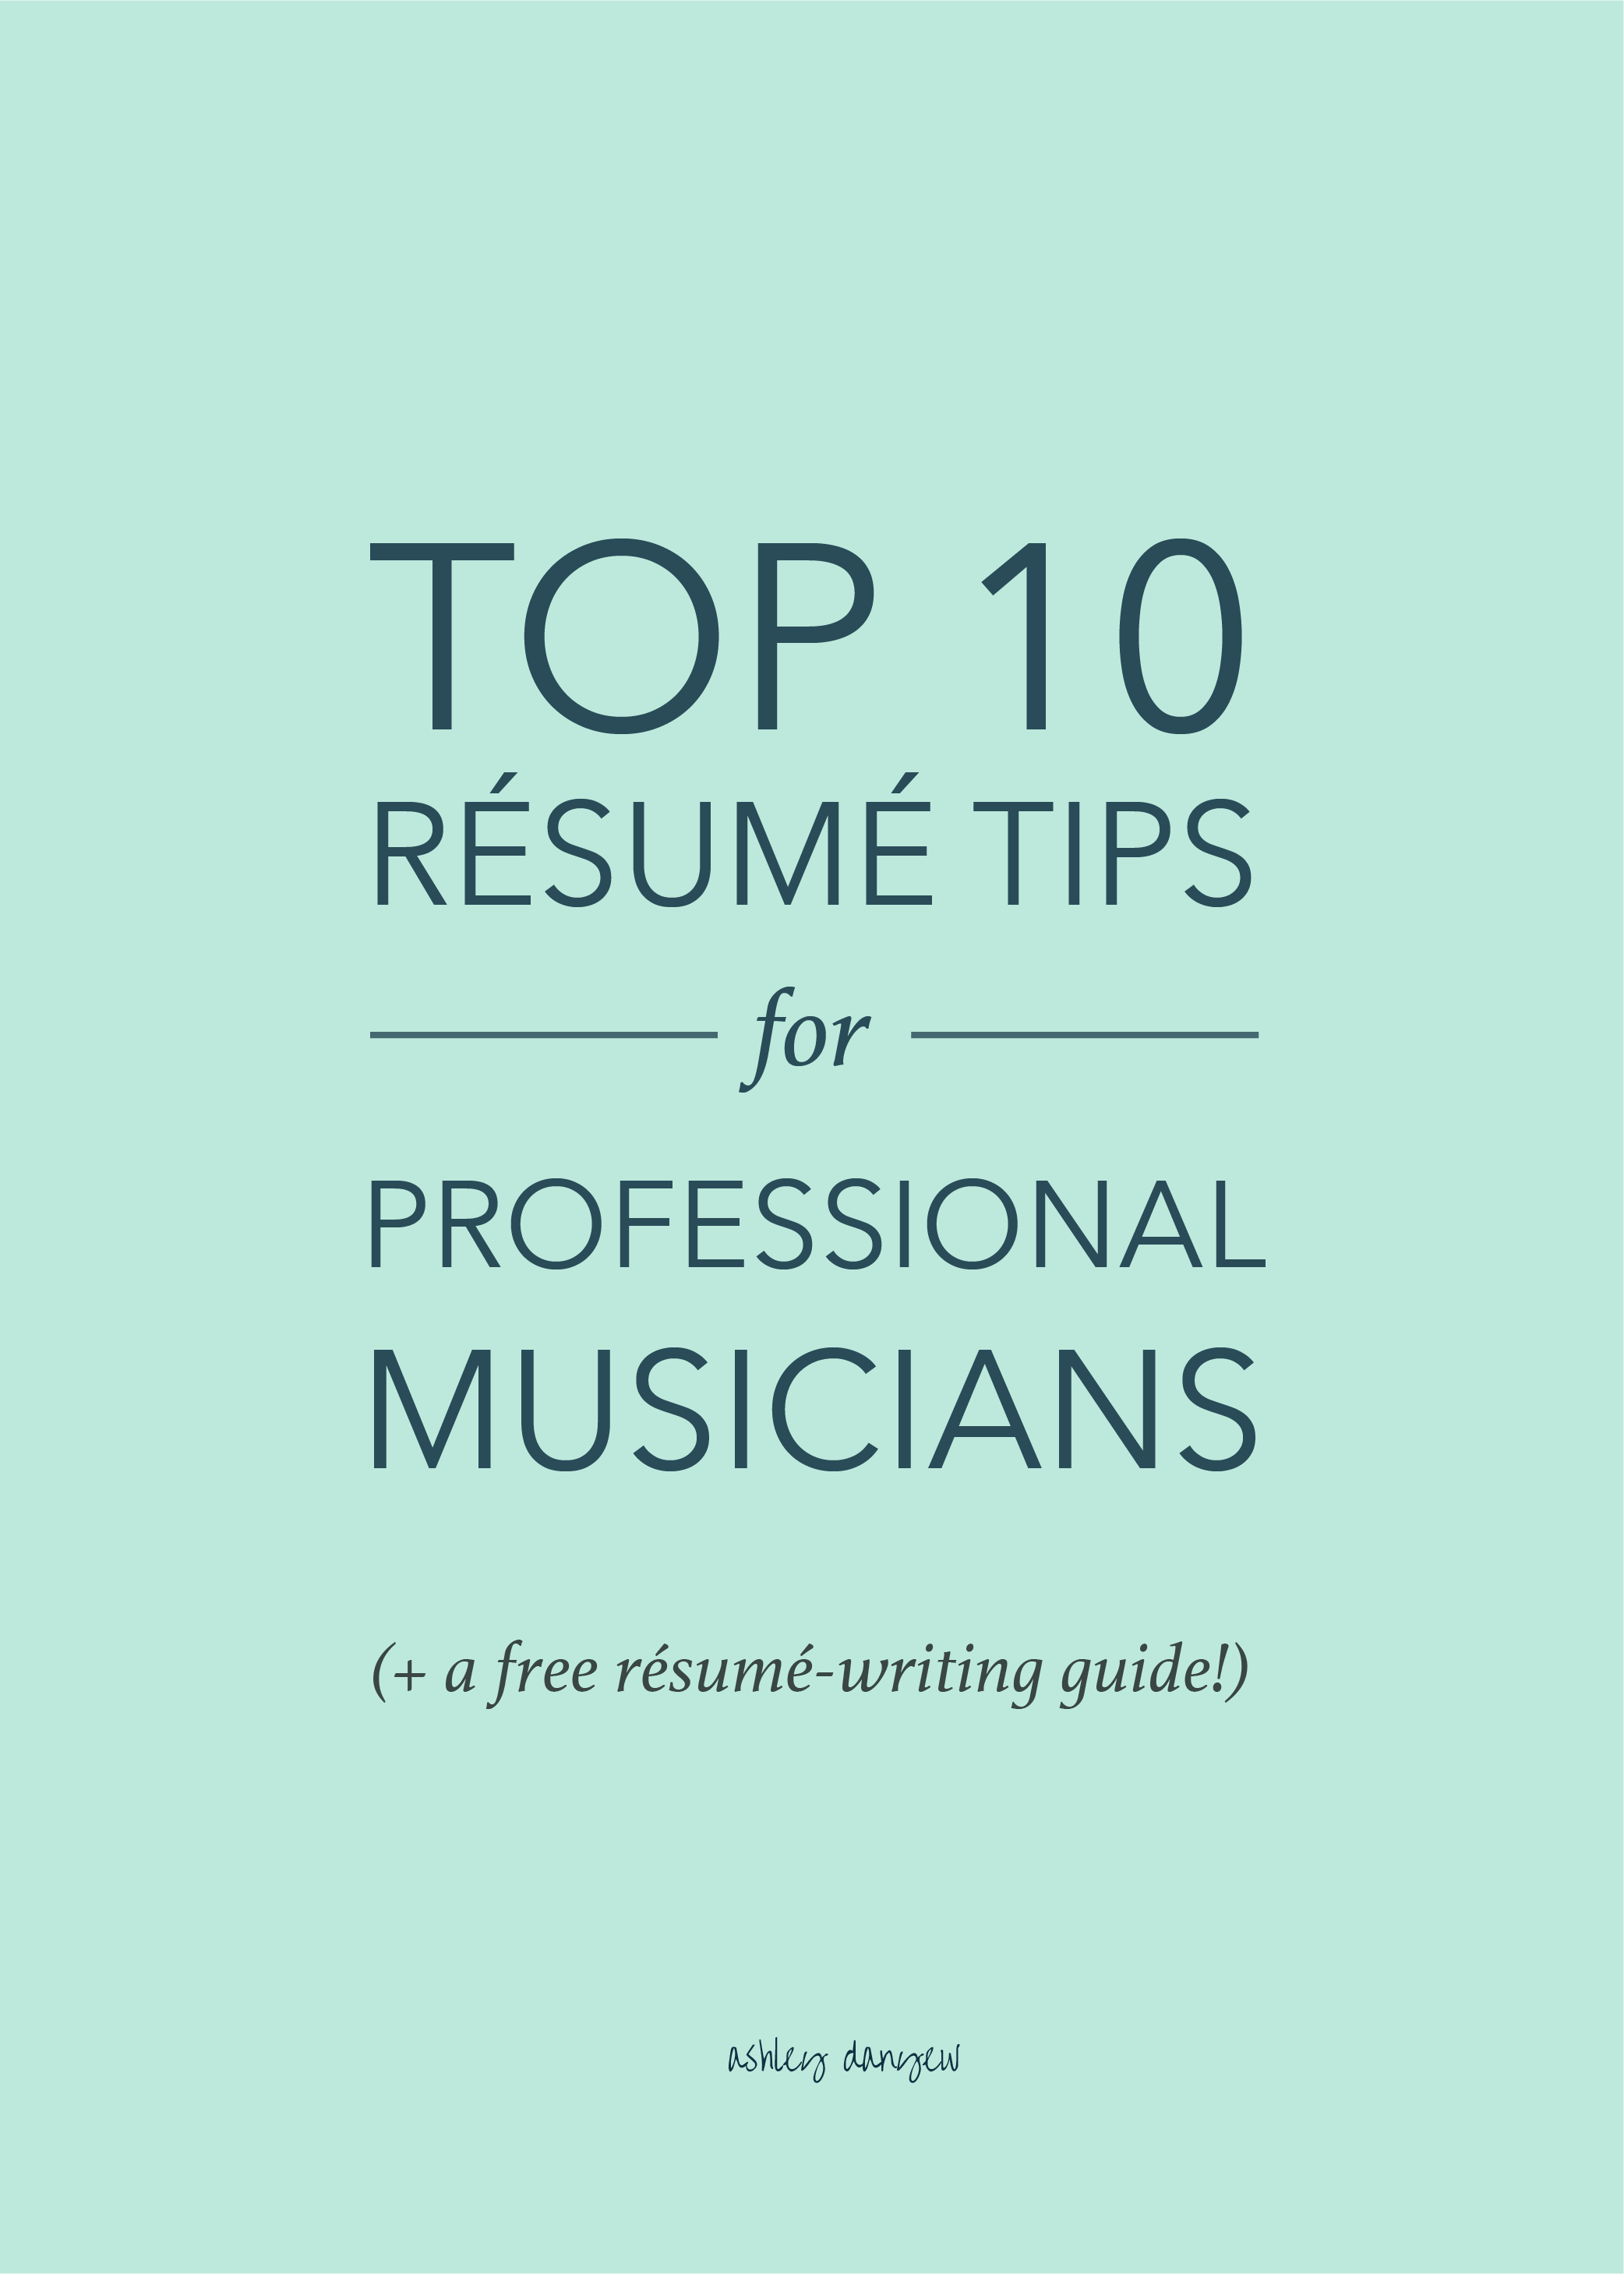 Top 10 Résumé Tips For Professional Musicians  Top 10 Resume Tips